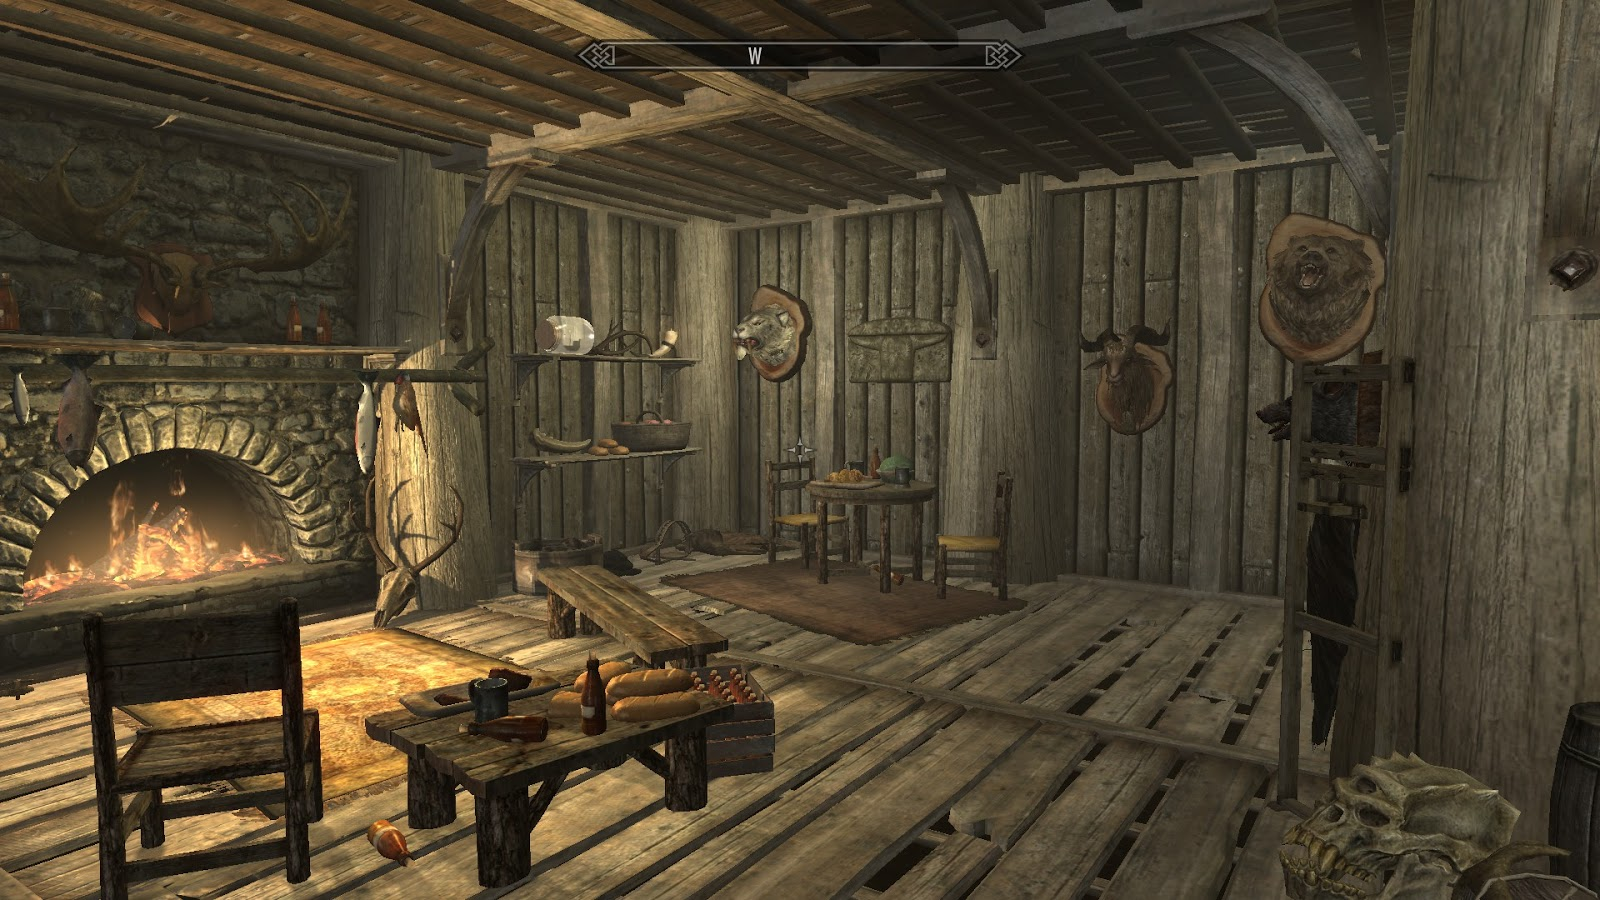 Skyrim Build Your Own Home Mod No Workbench